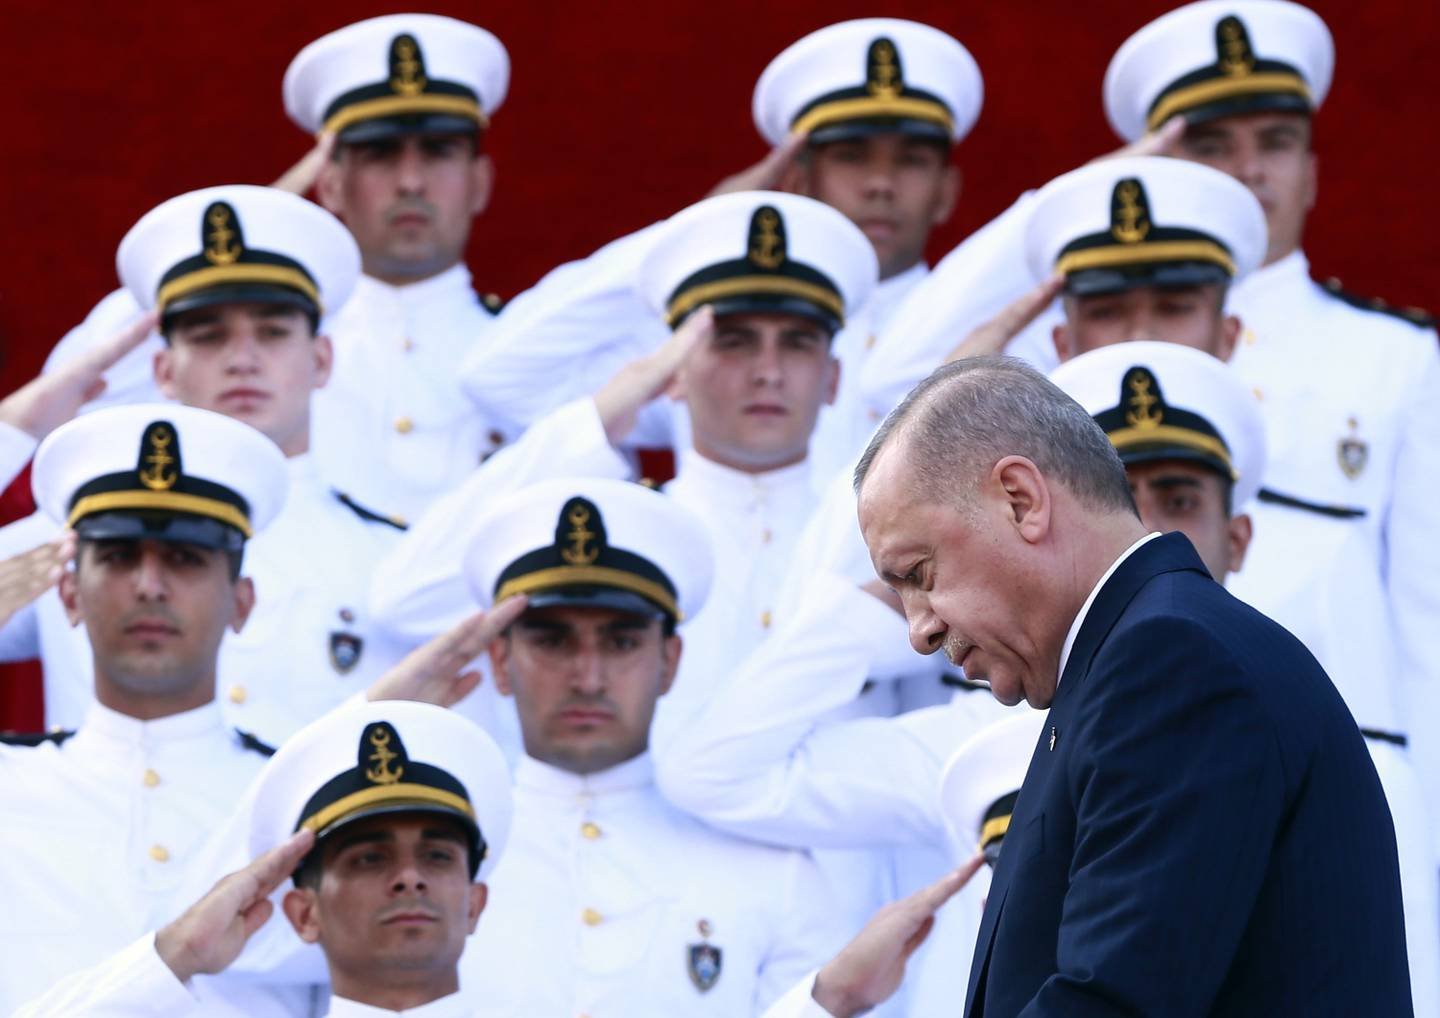 Turkey's President Recep Tayyip Erdogan, arrives to deliver a speech to graduates of a military academy in Istanbul, Saturday, Aug. 31, 2019.